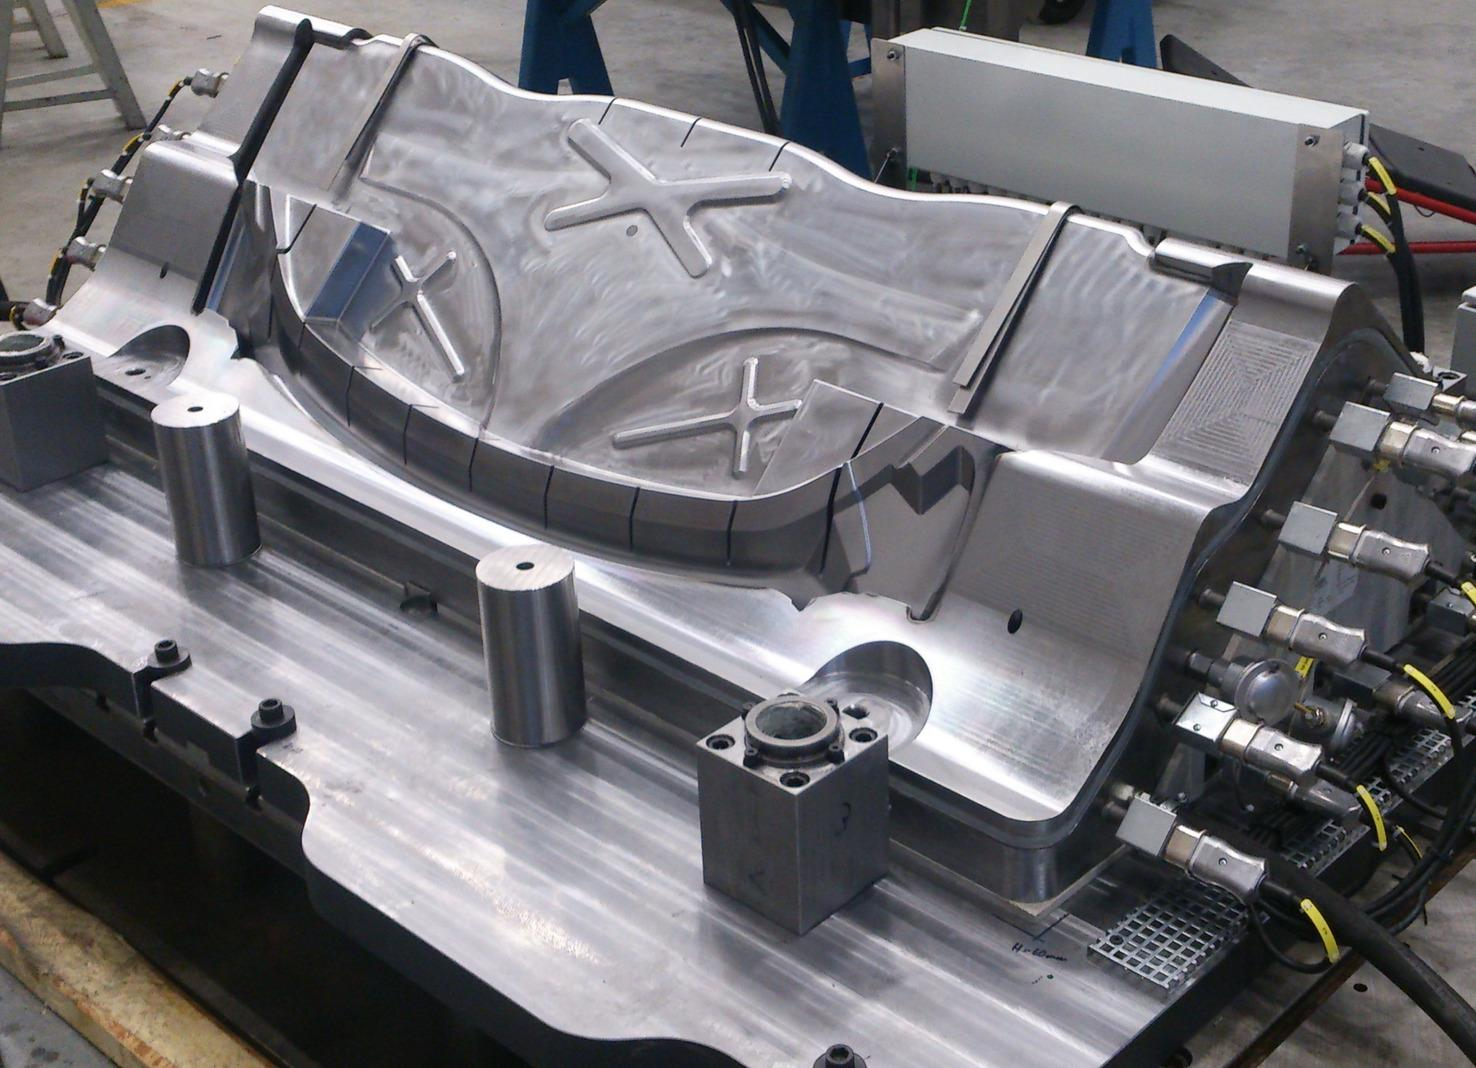 Together with research and industry, AP&T is developing production solutions for hot forming of carbon fiber, where falling material costs and faster cycle times are expected to open up additional areas of application. The tool in the image was produced during the TripleUse project, with funding from VINNOVA and SIP LIGHTer.